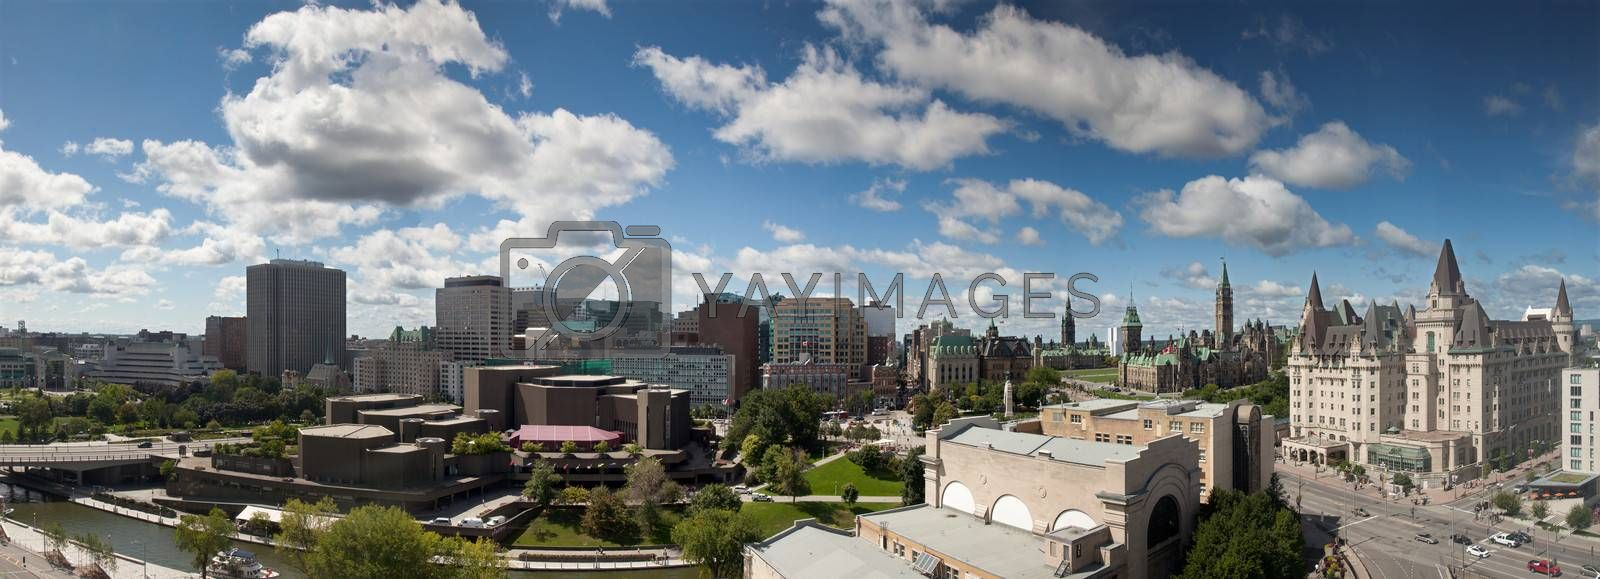 Panorama view of Parliament Buildings and downtown skyline, Ottawa Canada